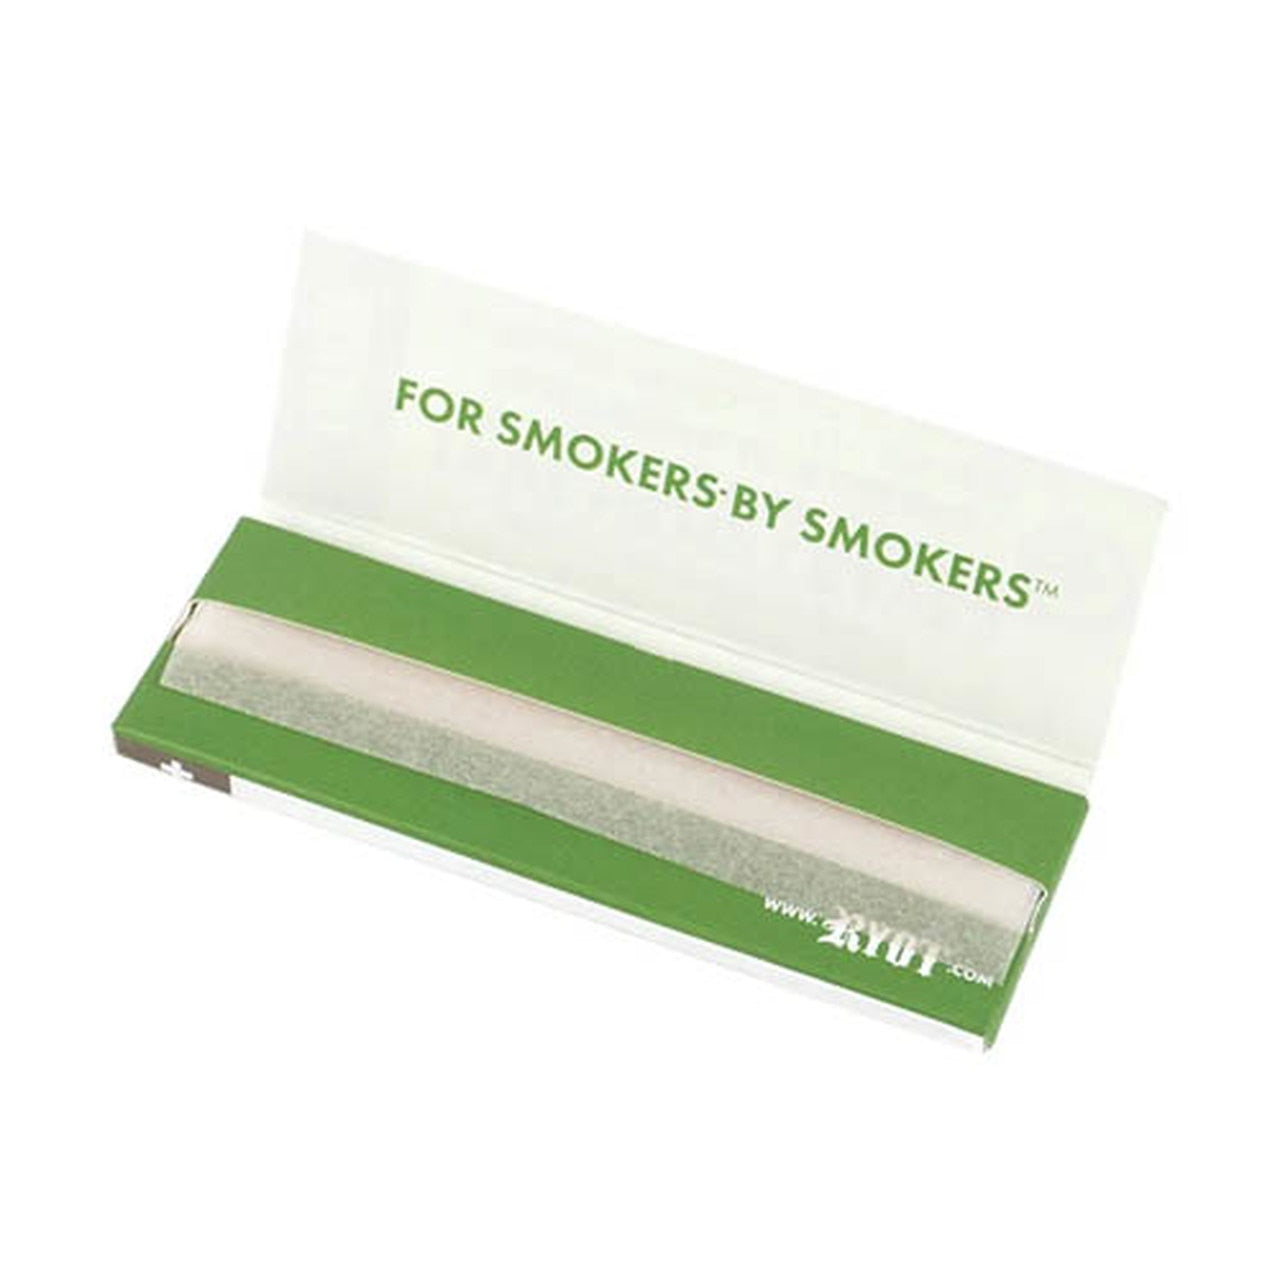 "RYOT Rolling Papers 1 1/4"" Organic True Hemp Leaves - ""For Smokers"" Graphic (25pc Display)"